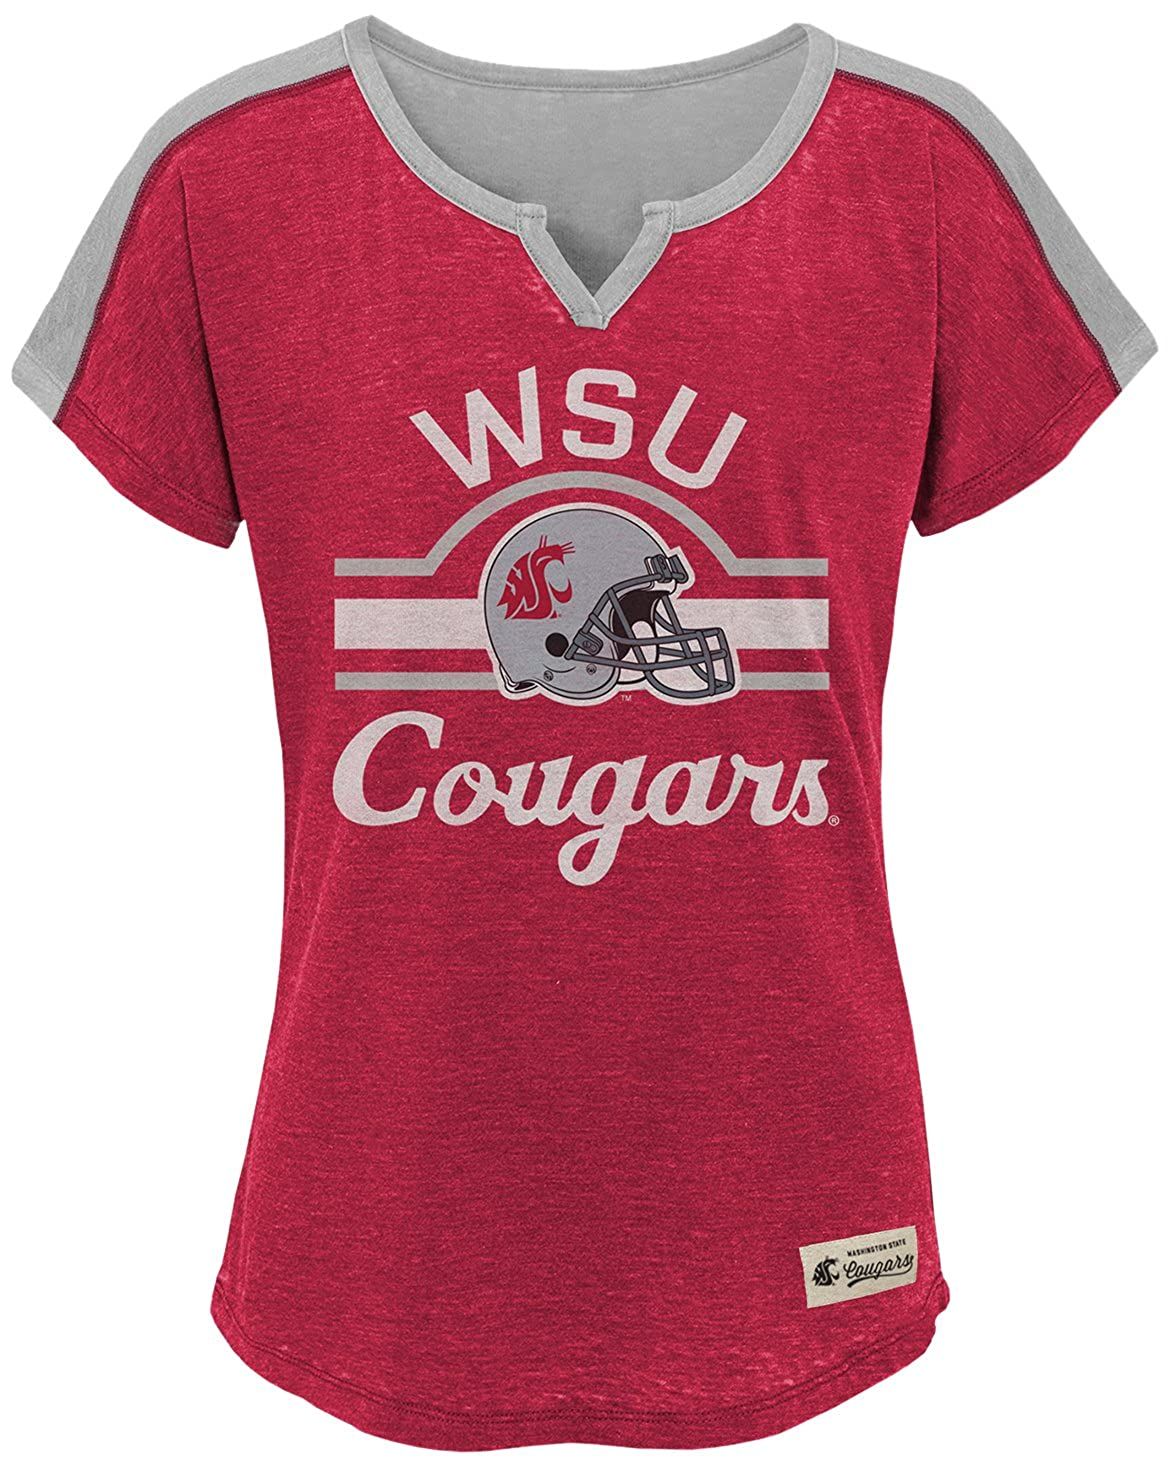 Victory Red 14 NCAA by Outerstuff NCAA Washington State Cougars Youth Girls Tribute Raglan Football Tee Youth Large